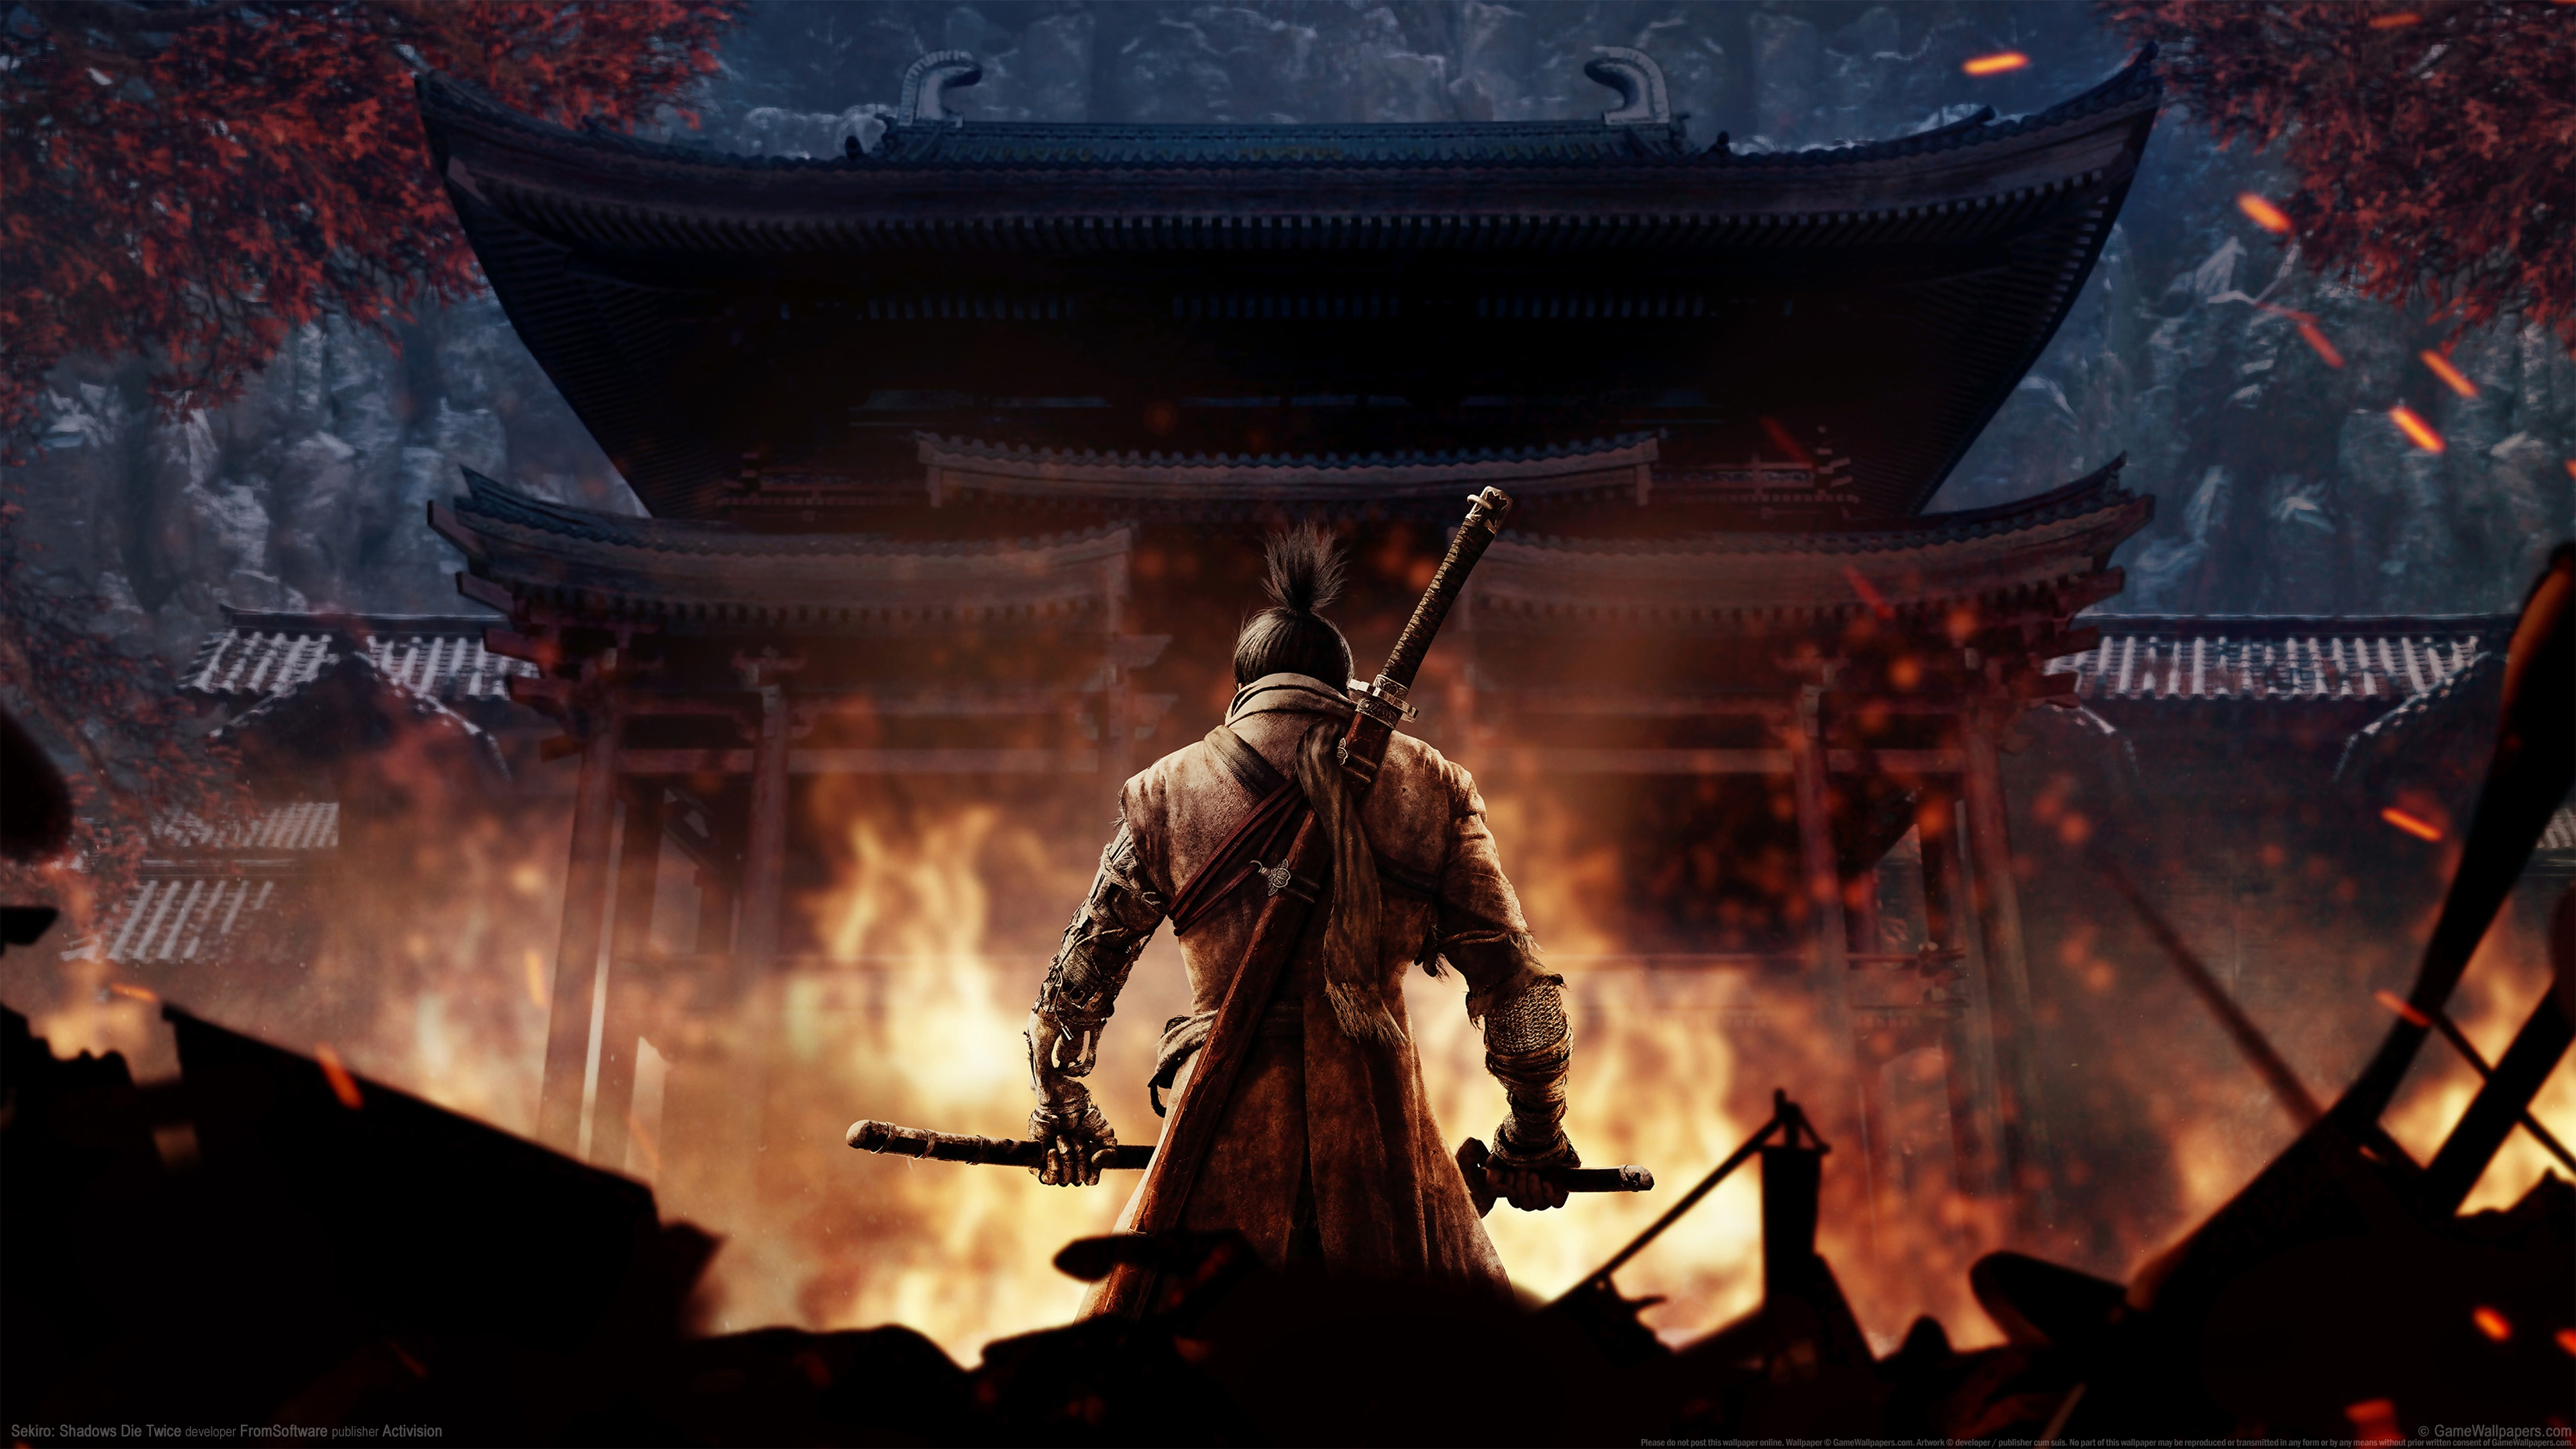 General 3840x2160 Sekiro: Shadows Die Twice samurai video games video game art watermarked From Software